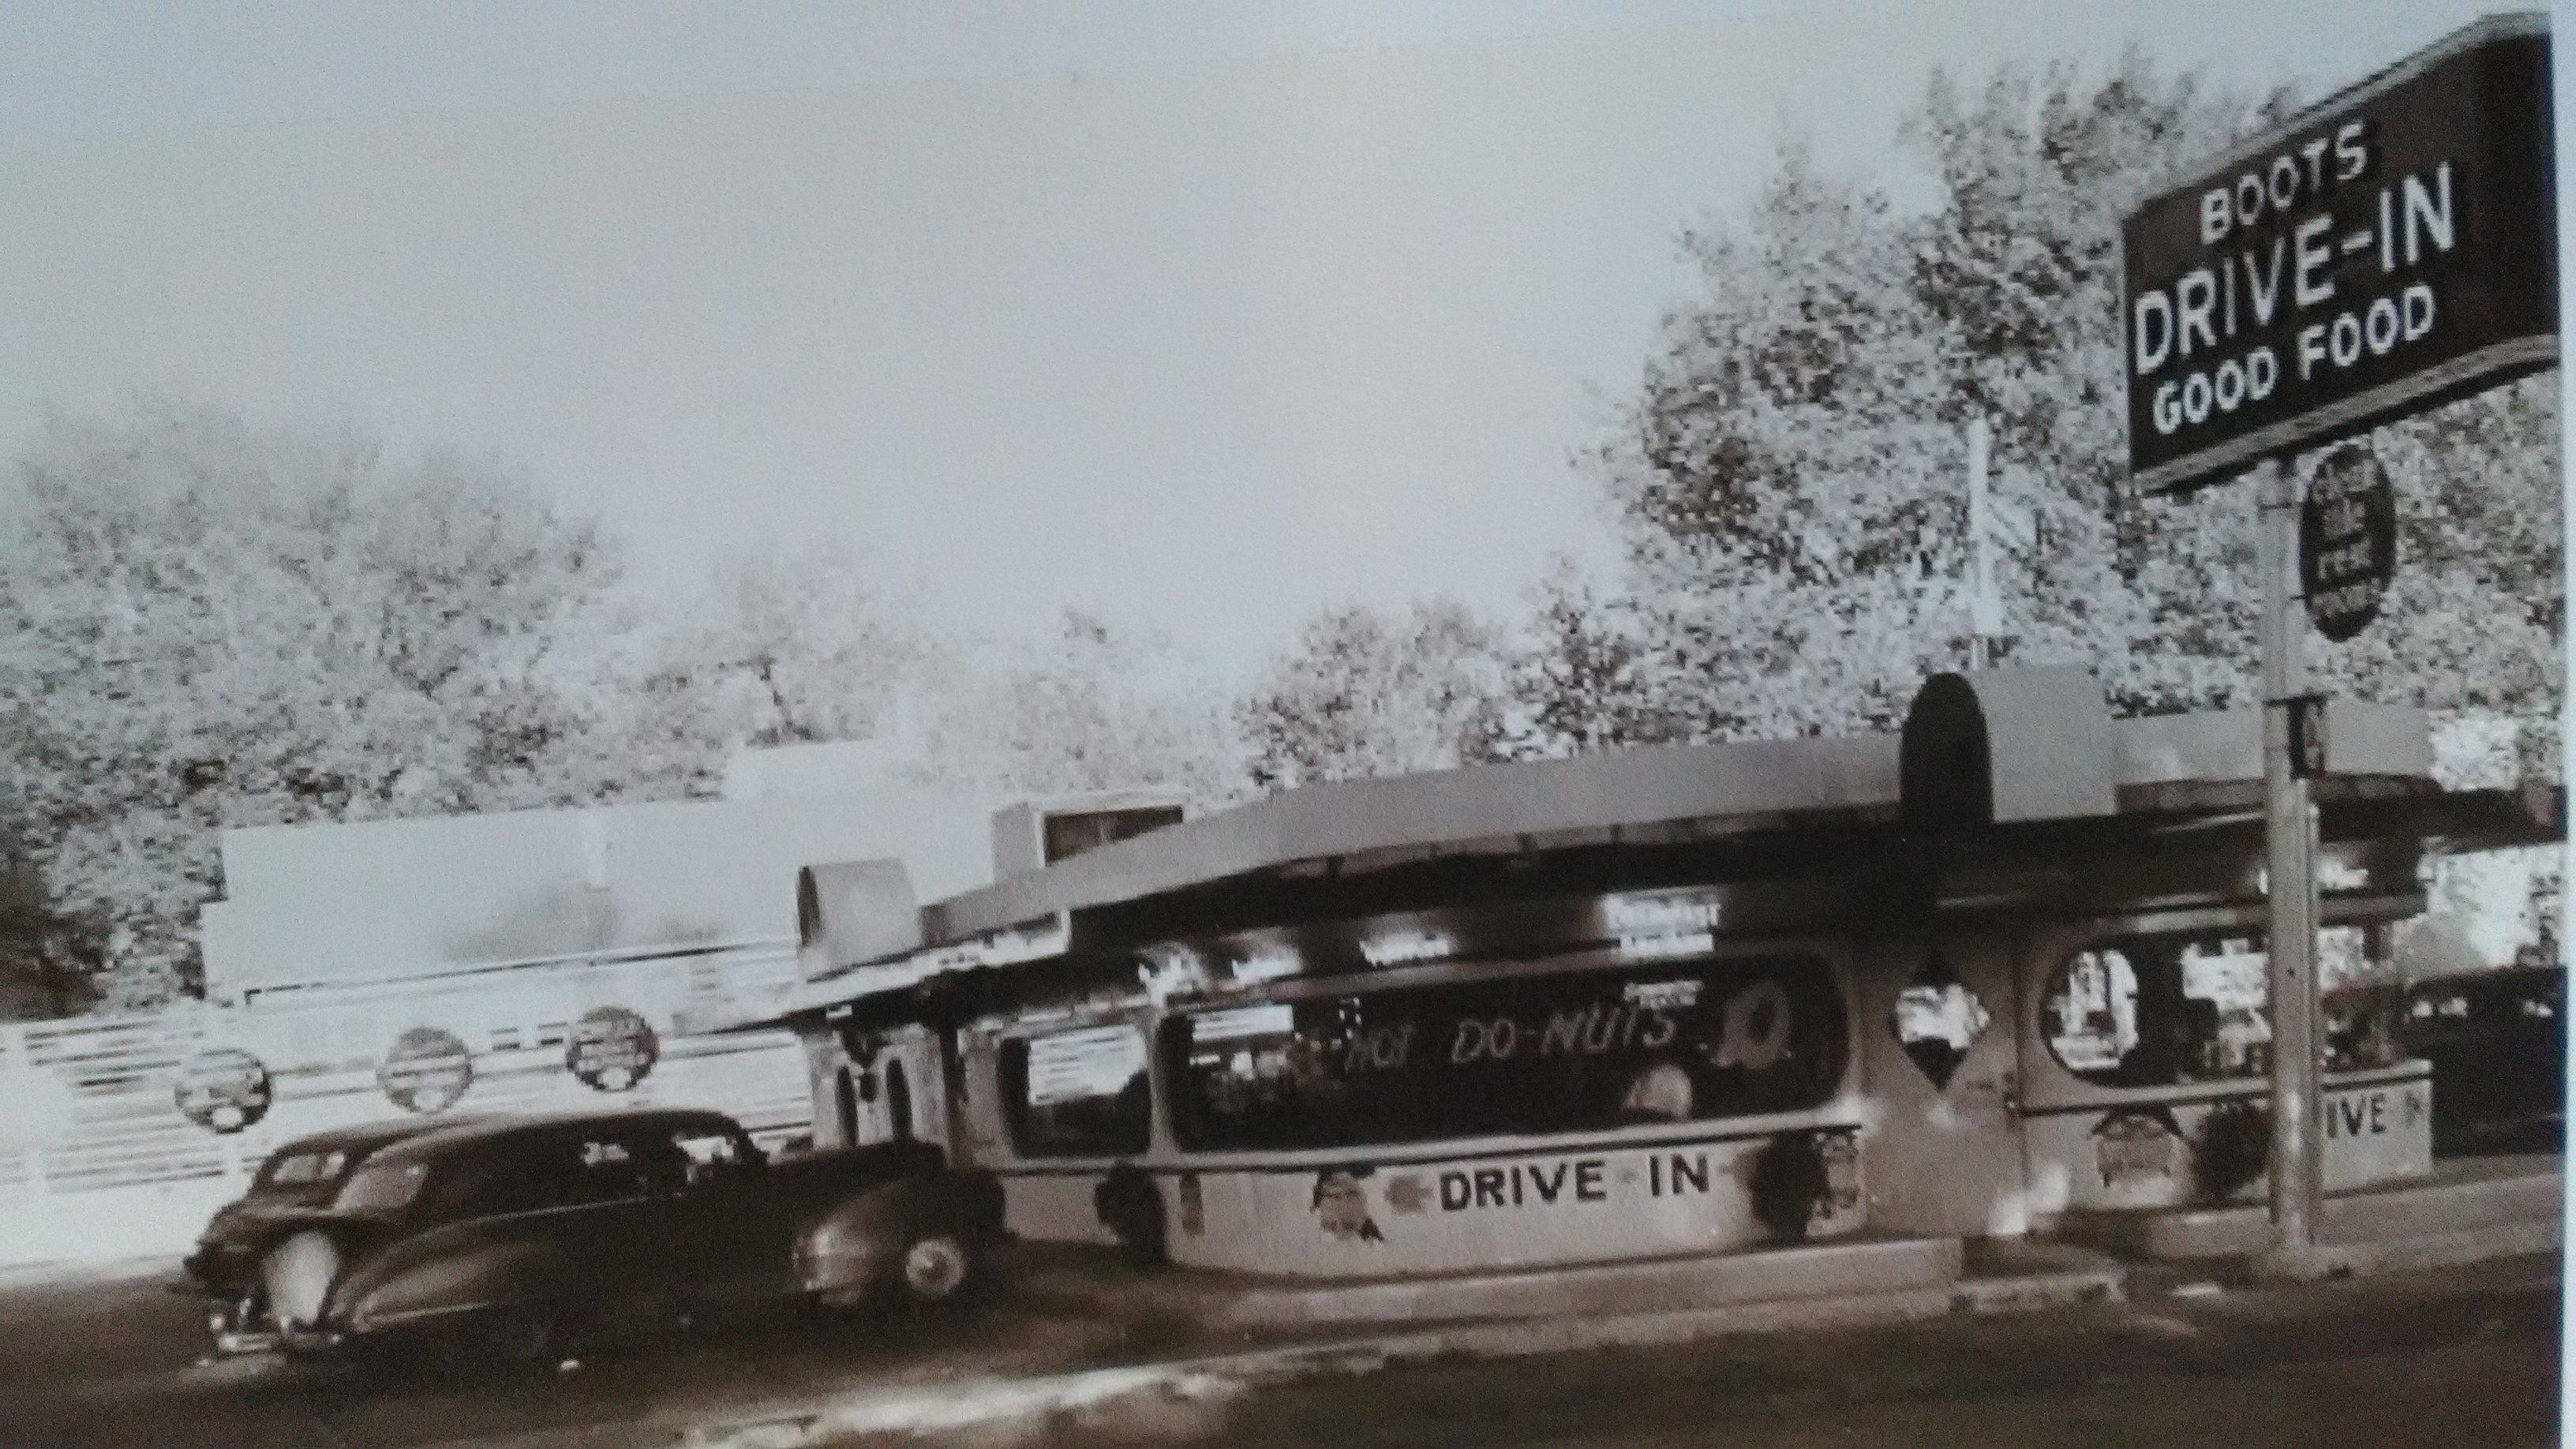 Postcard of Boots Drive-in.